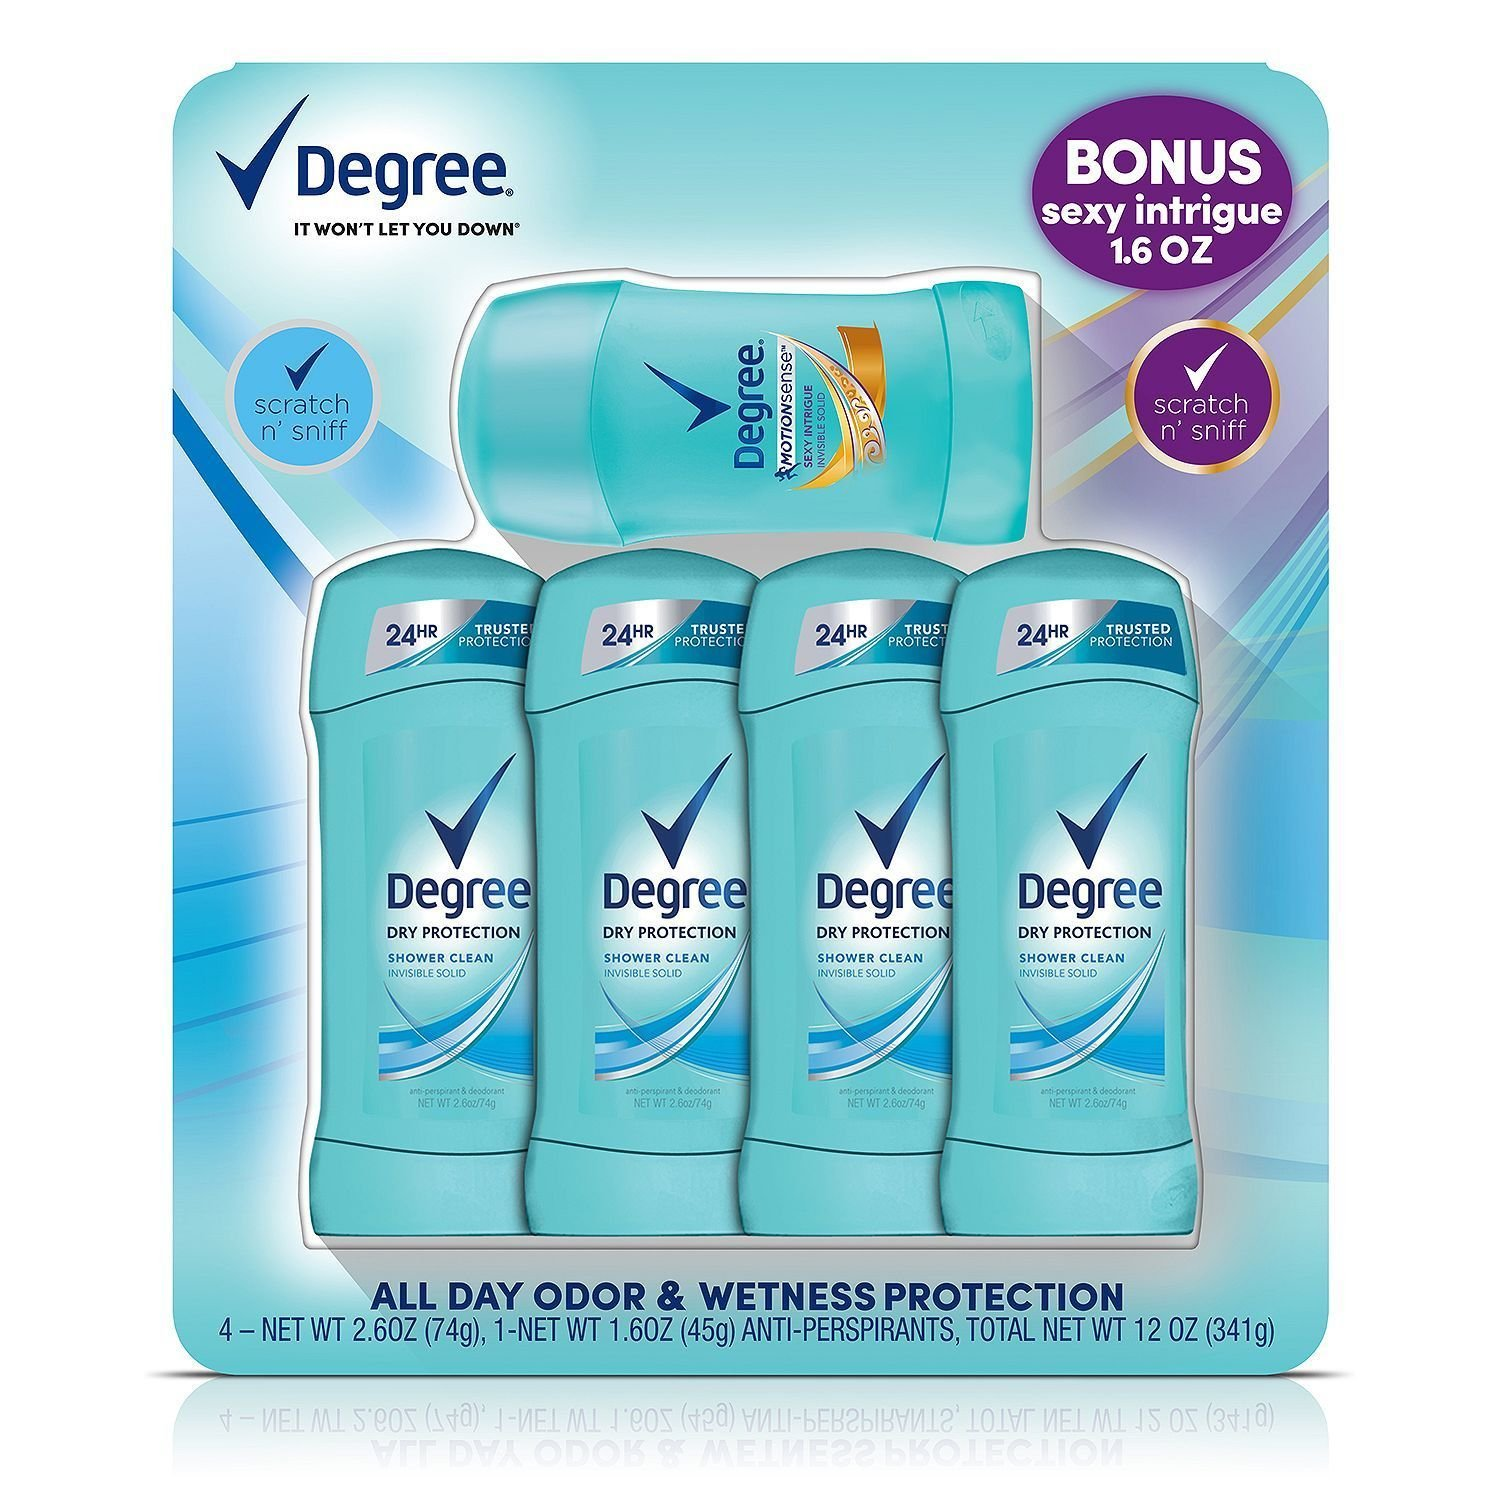 Degree Dry Protection Deodorant, Shower Clean (2.6 oz., 4 pk. + 1.6 oz. Sexy Int